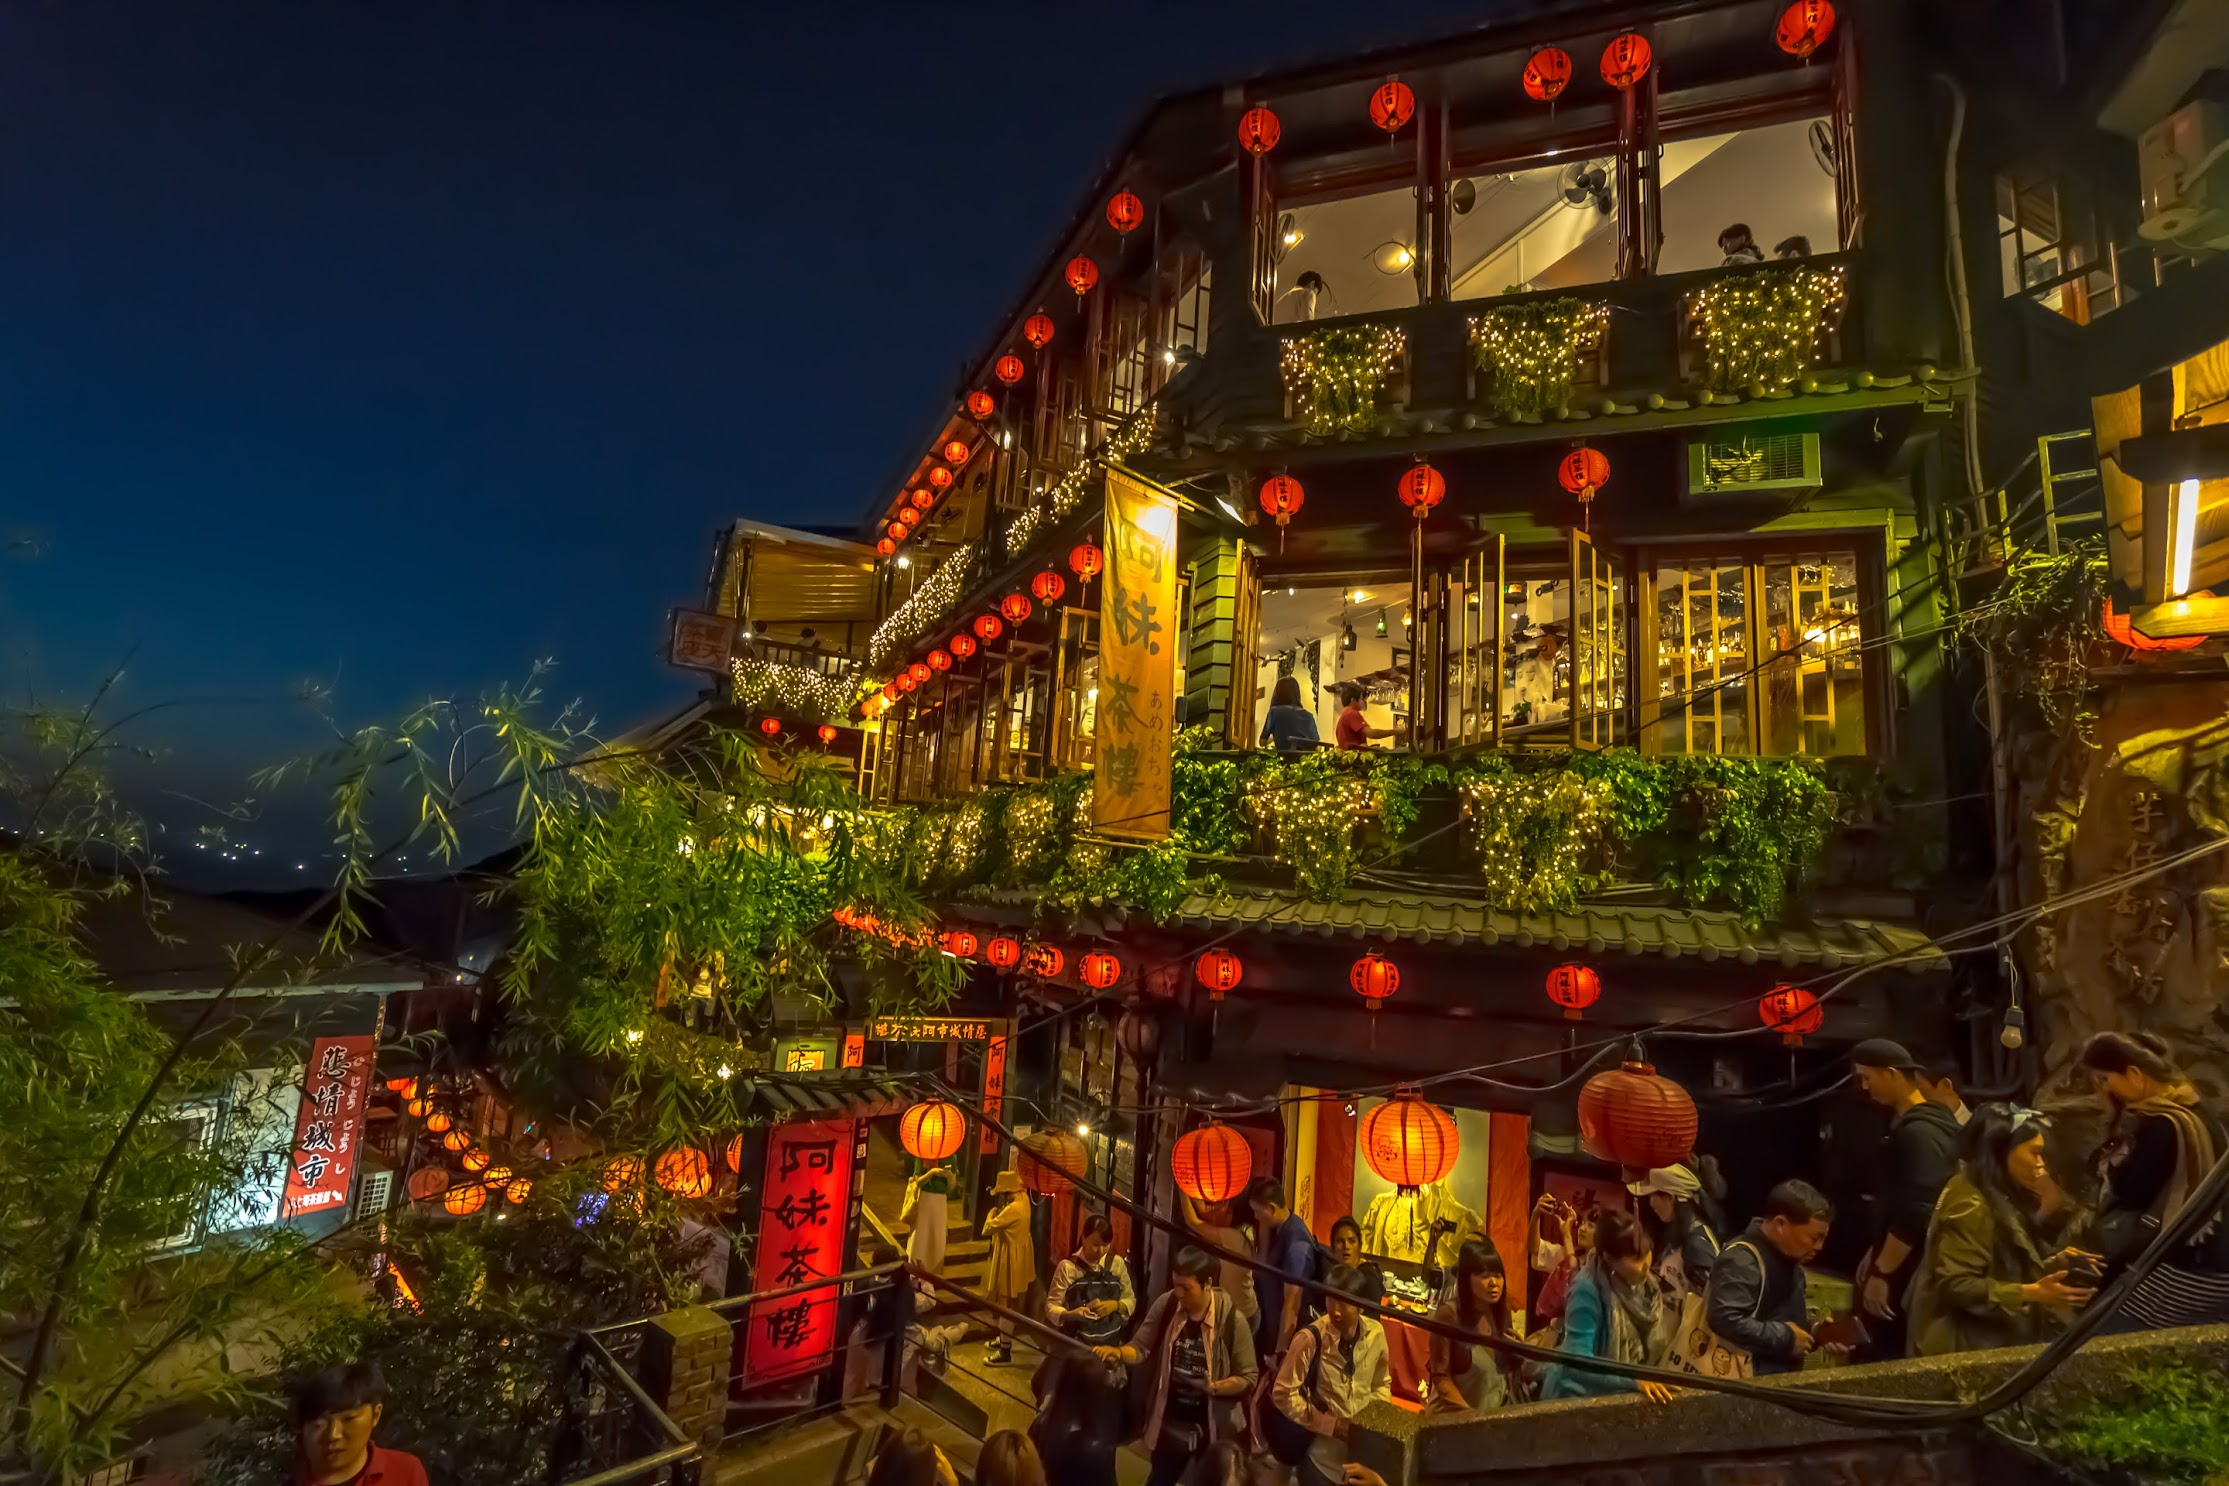 Jiufen A Mei Tea House Light-up2